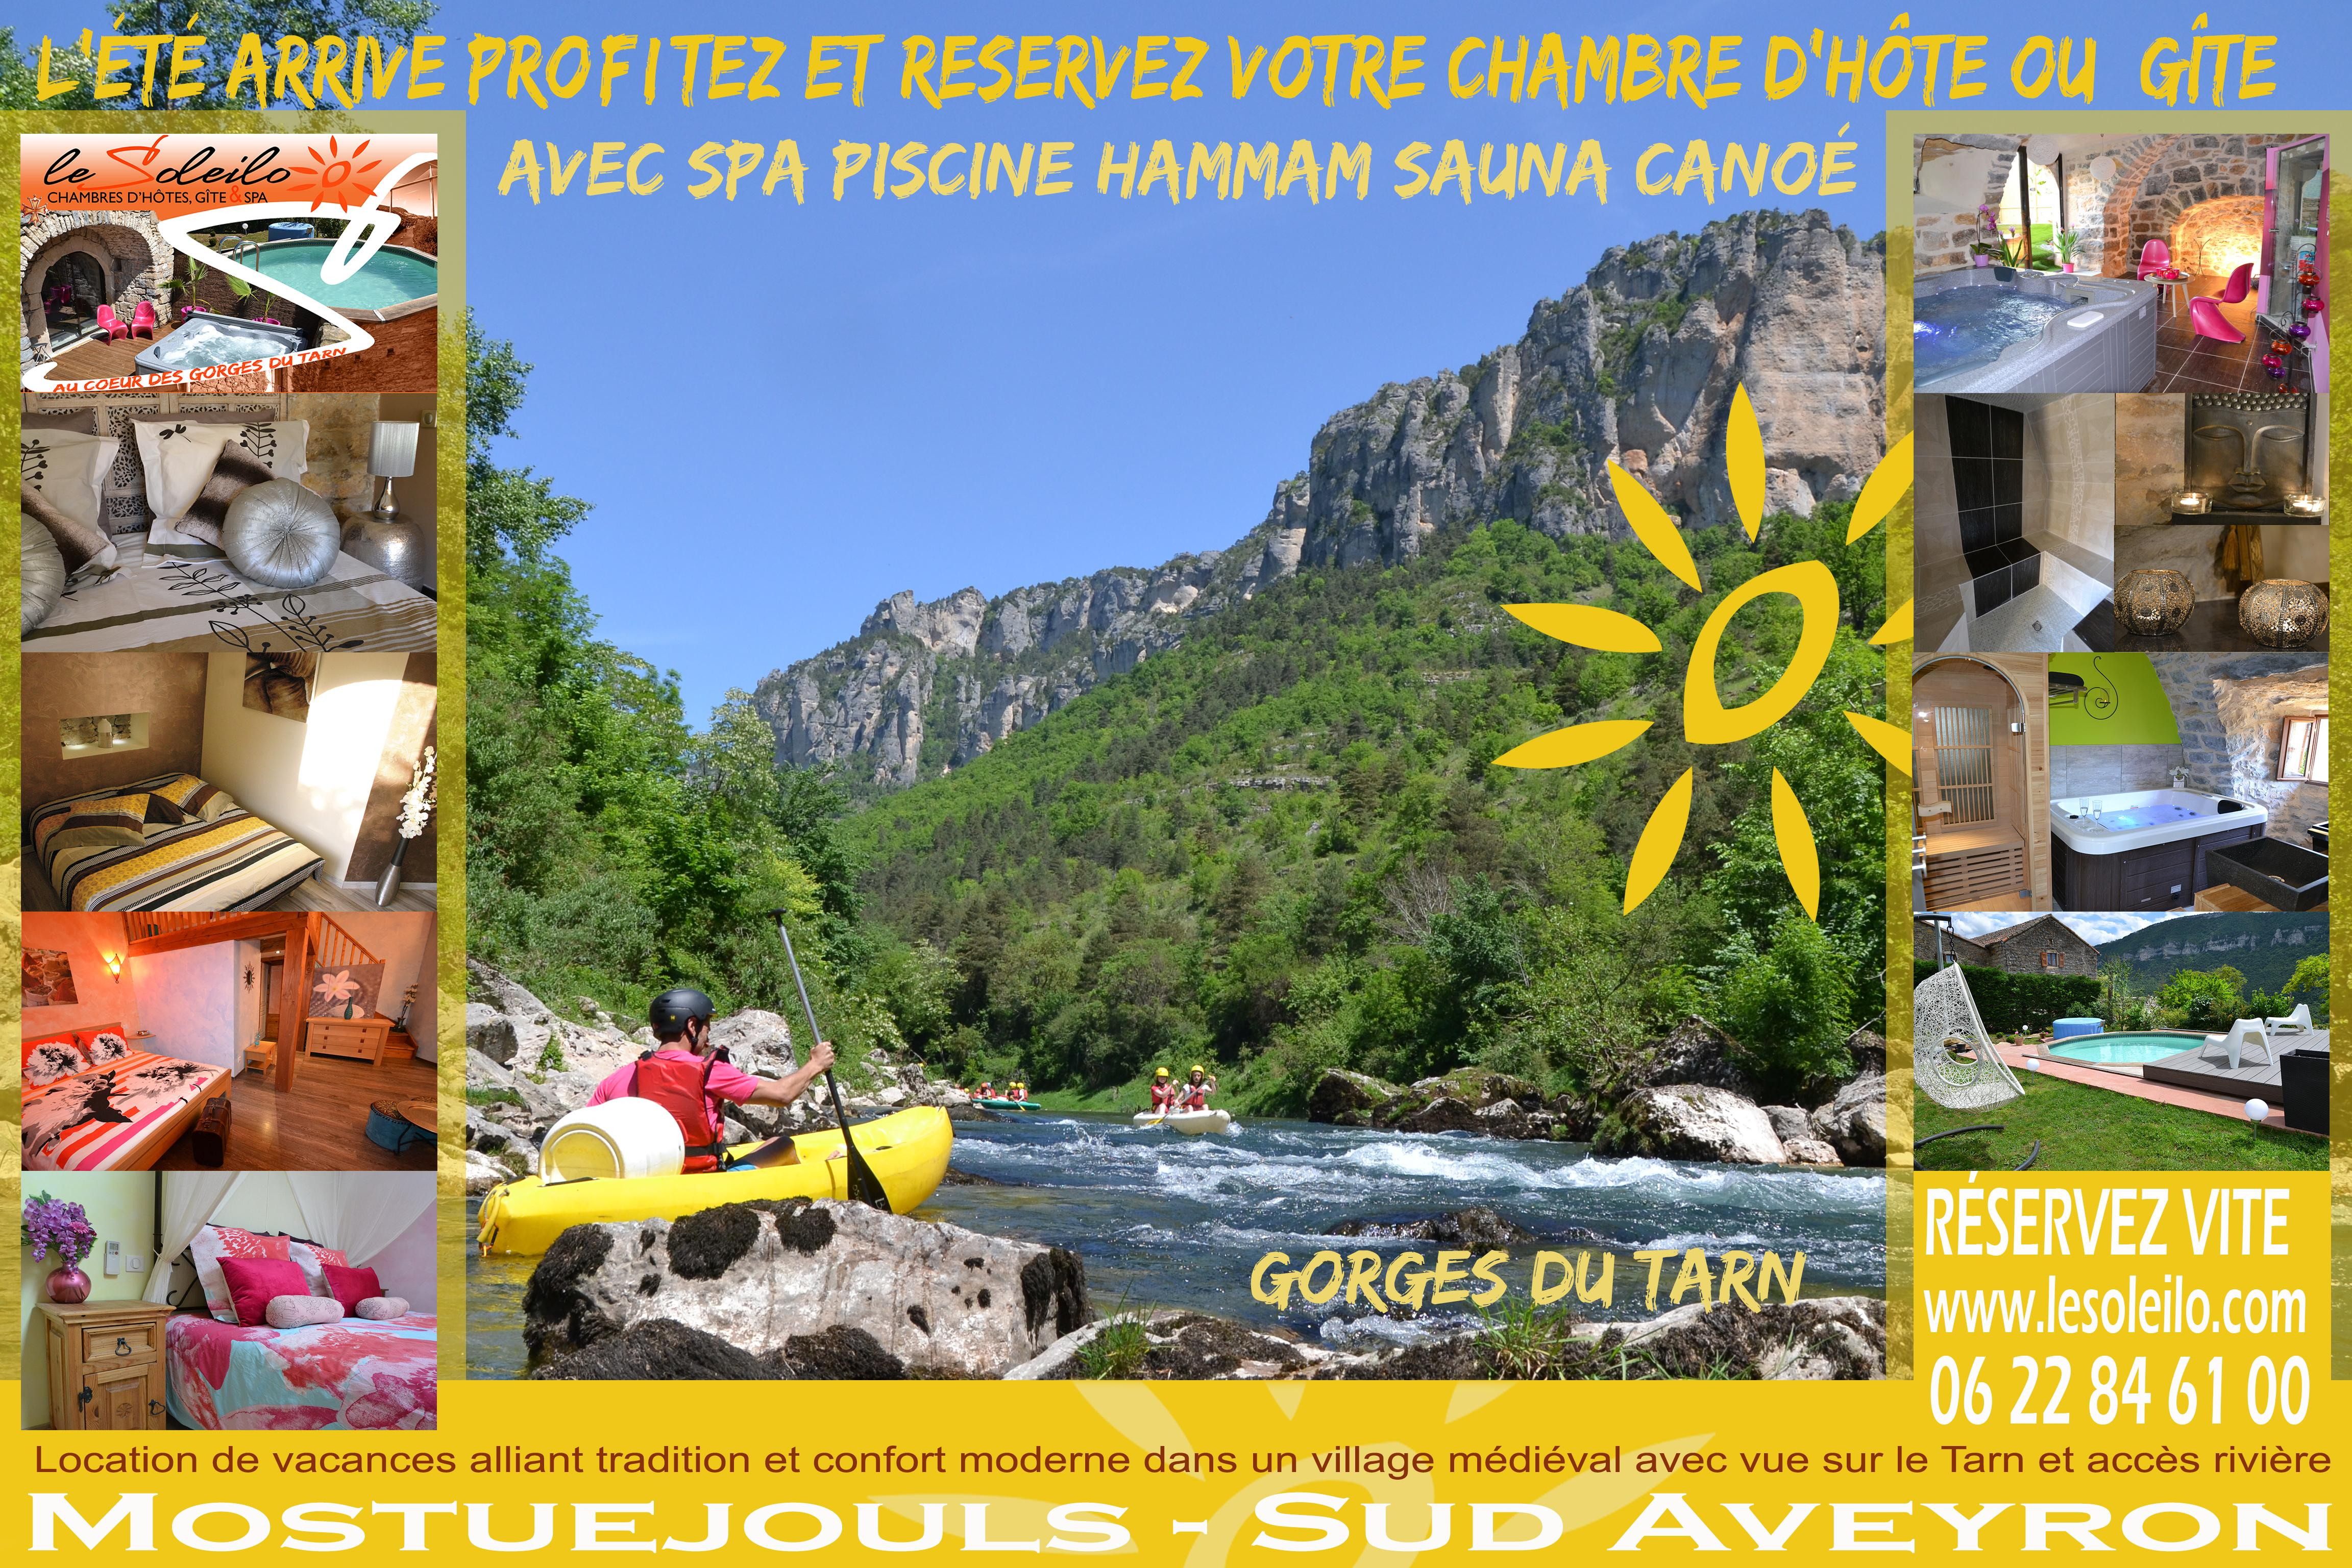 Great Holiday Accommodation Aveyron Lozère In Bed And Breakfast Cottage And Canoe  Tarn Gorges Unusual Charming Night